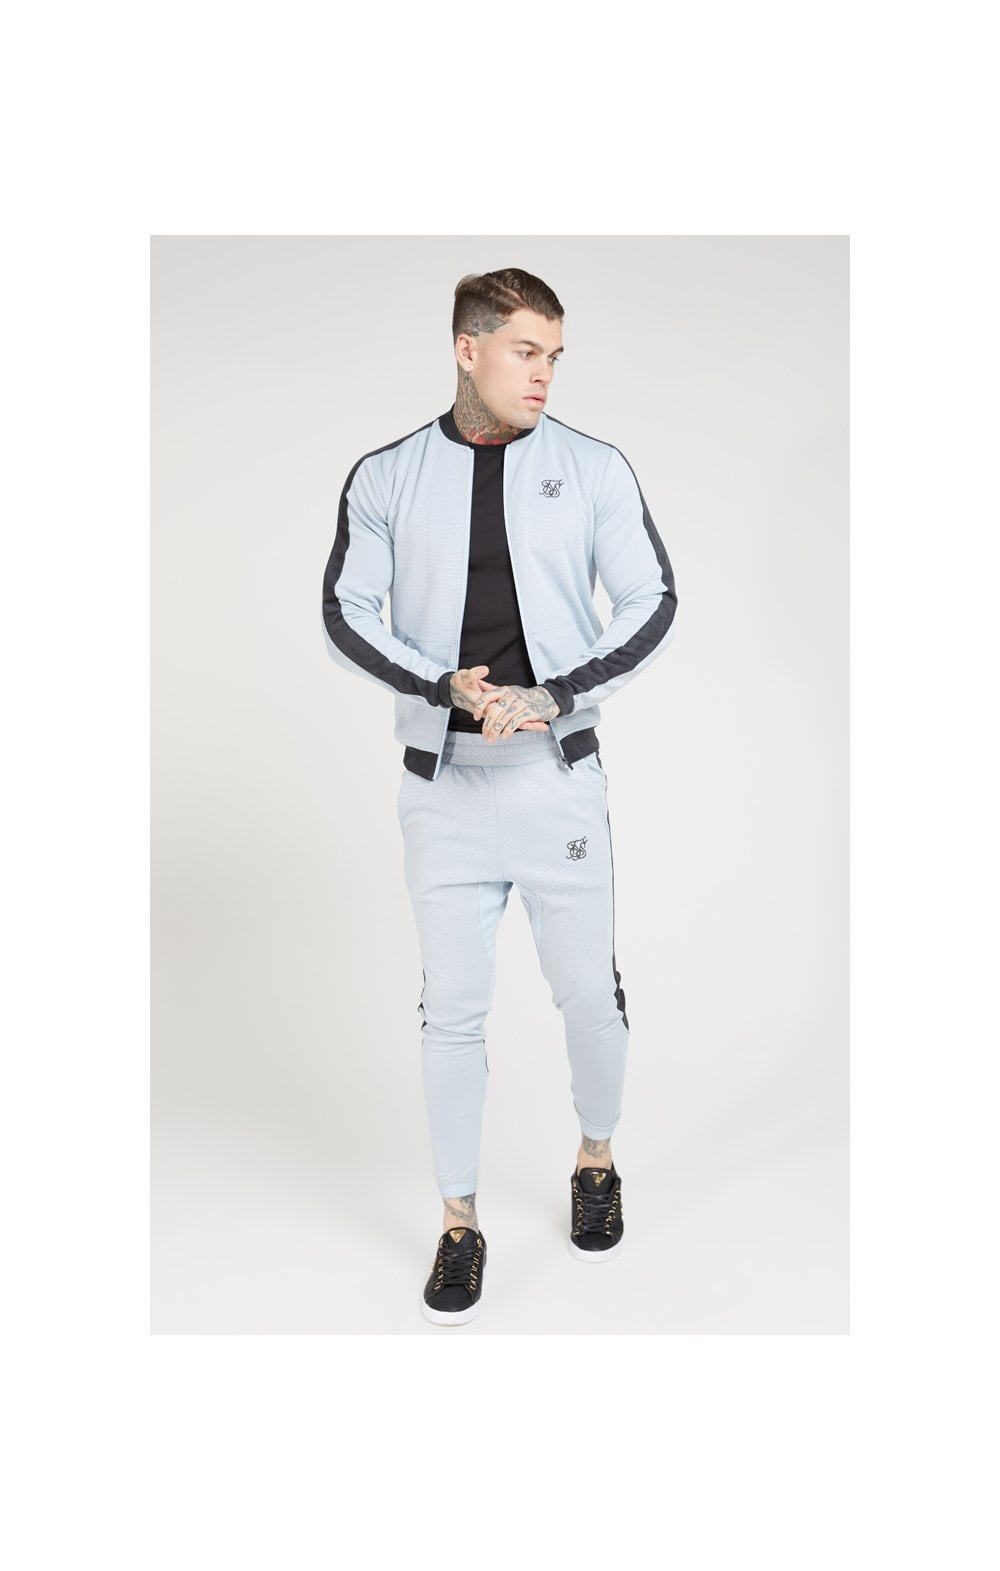 SikSilk Eyelet Poly Tape Bomber Jacket – Ice Grey & Charcoal (2)